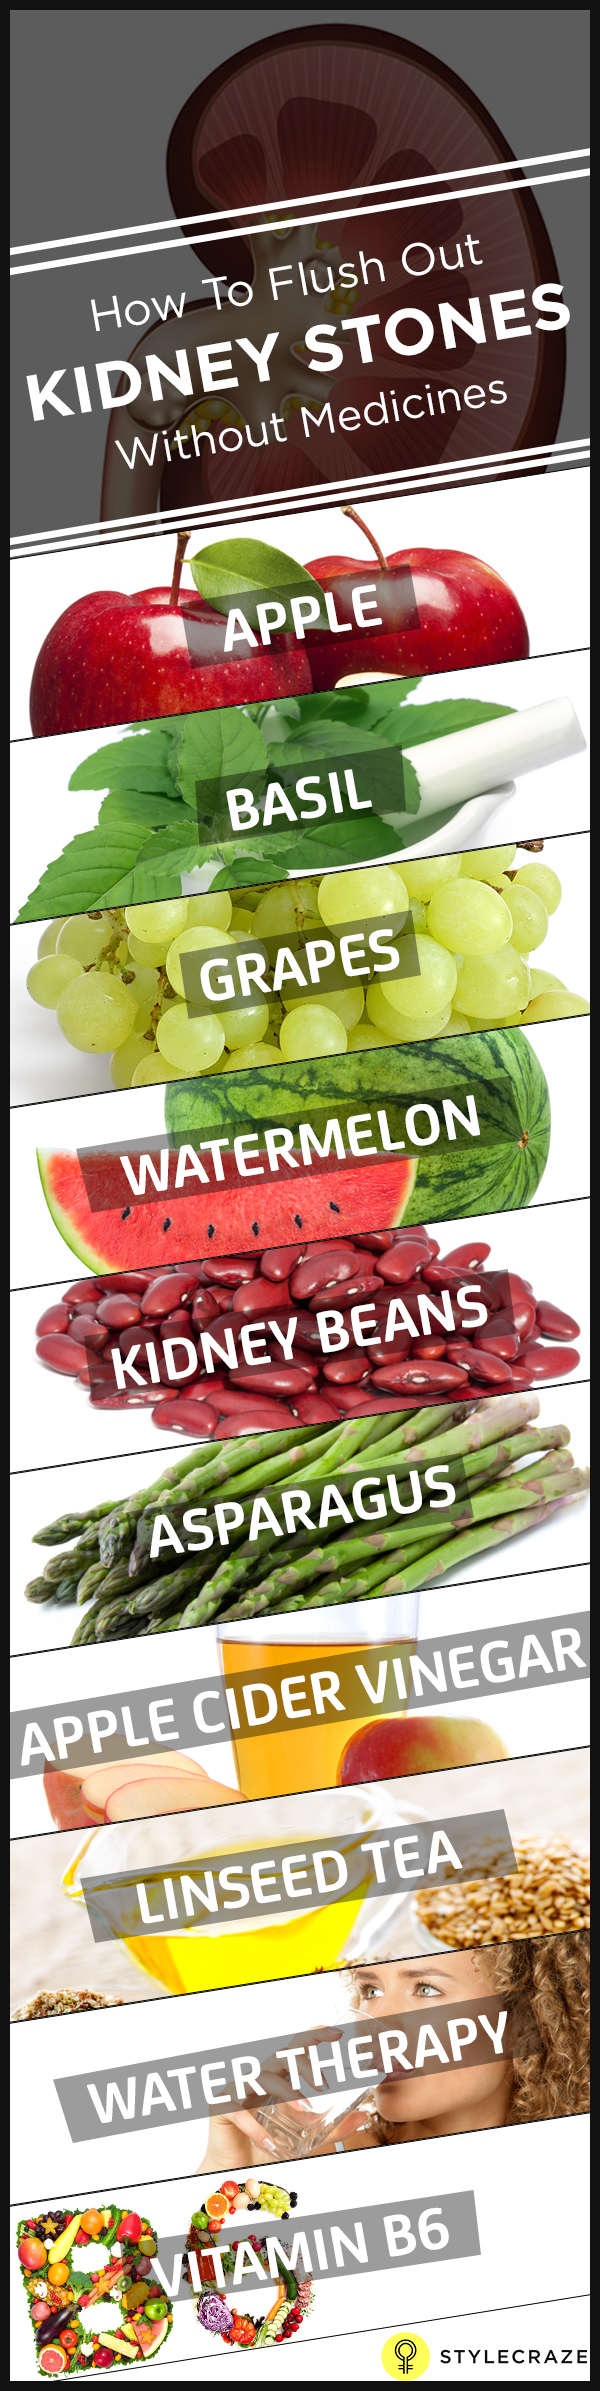 How to flush out Kidney Stones Without Medicines